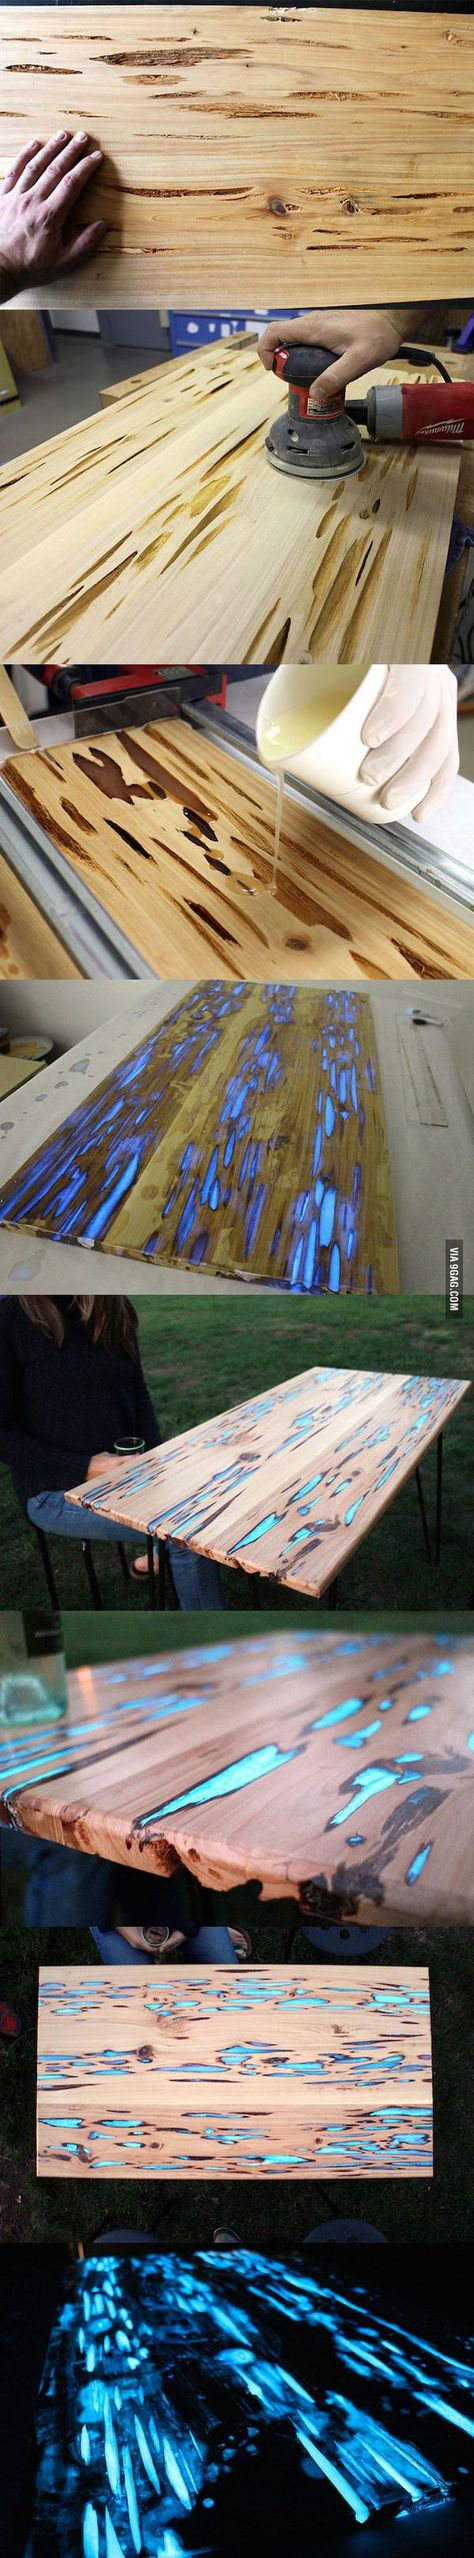 Glowing table.